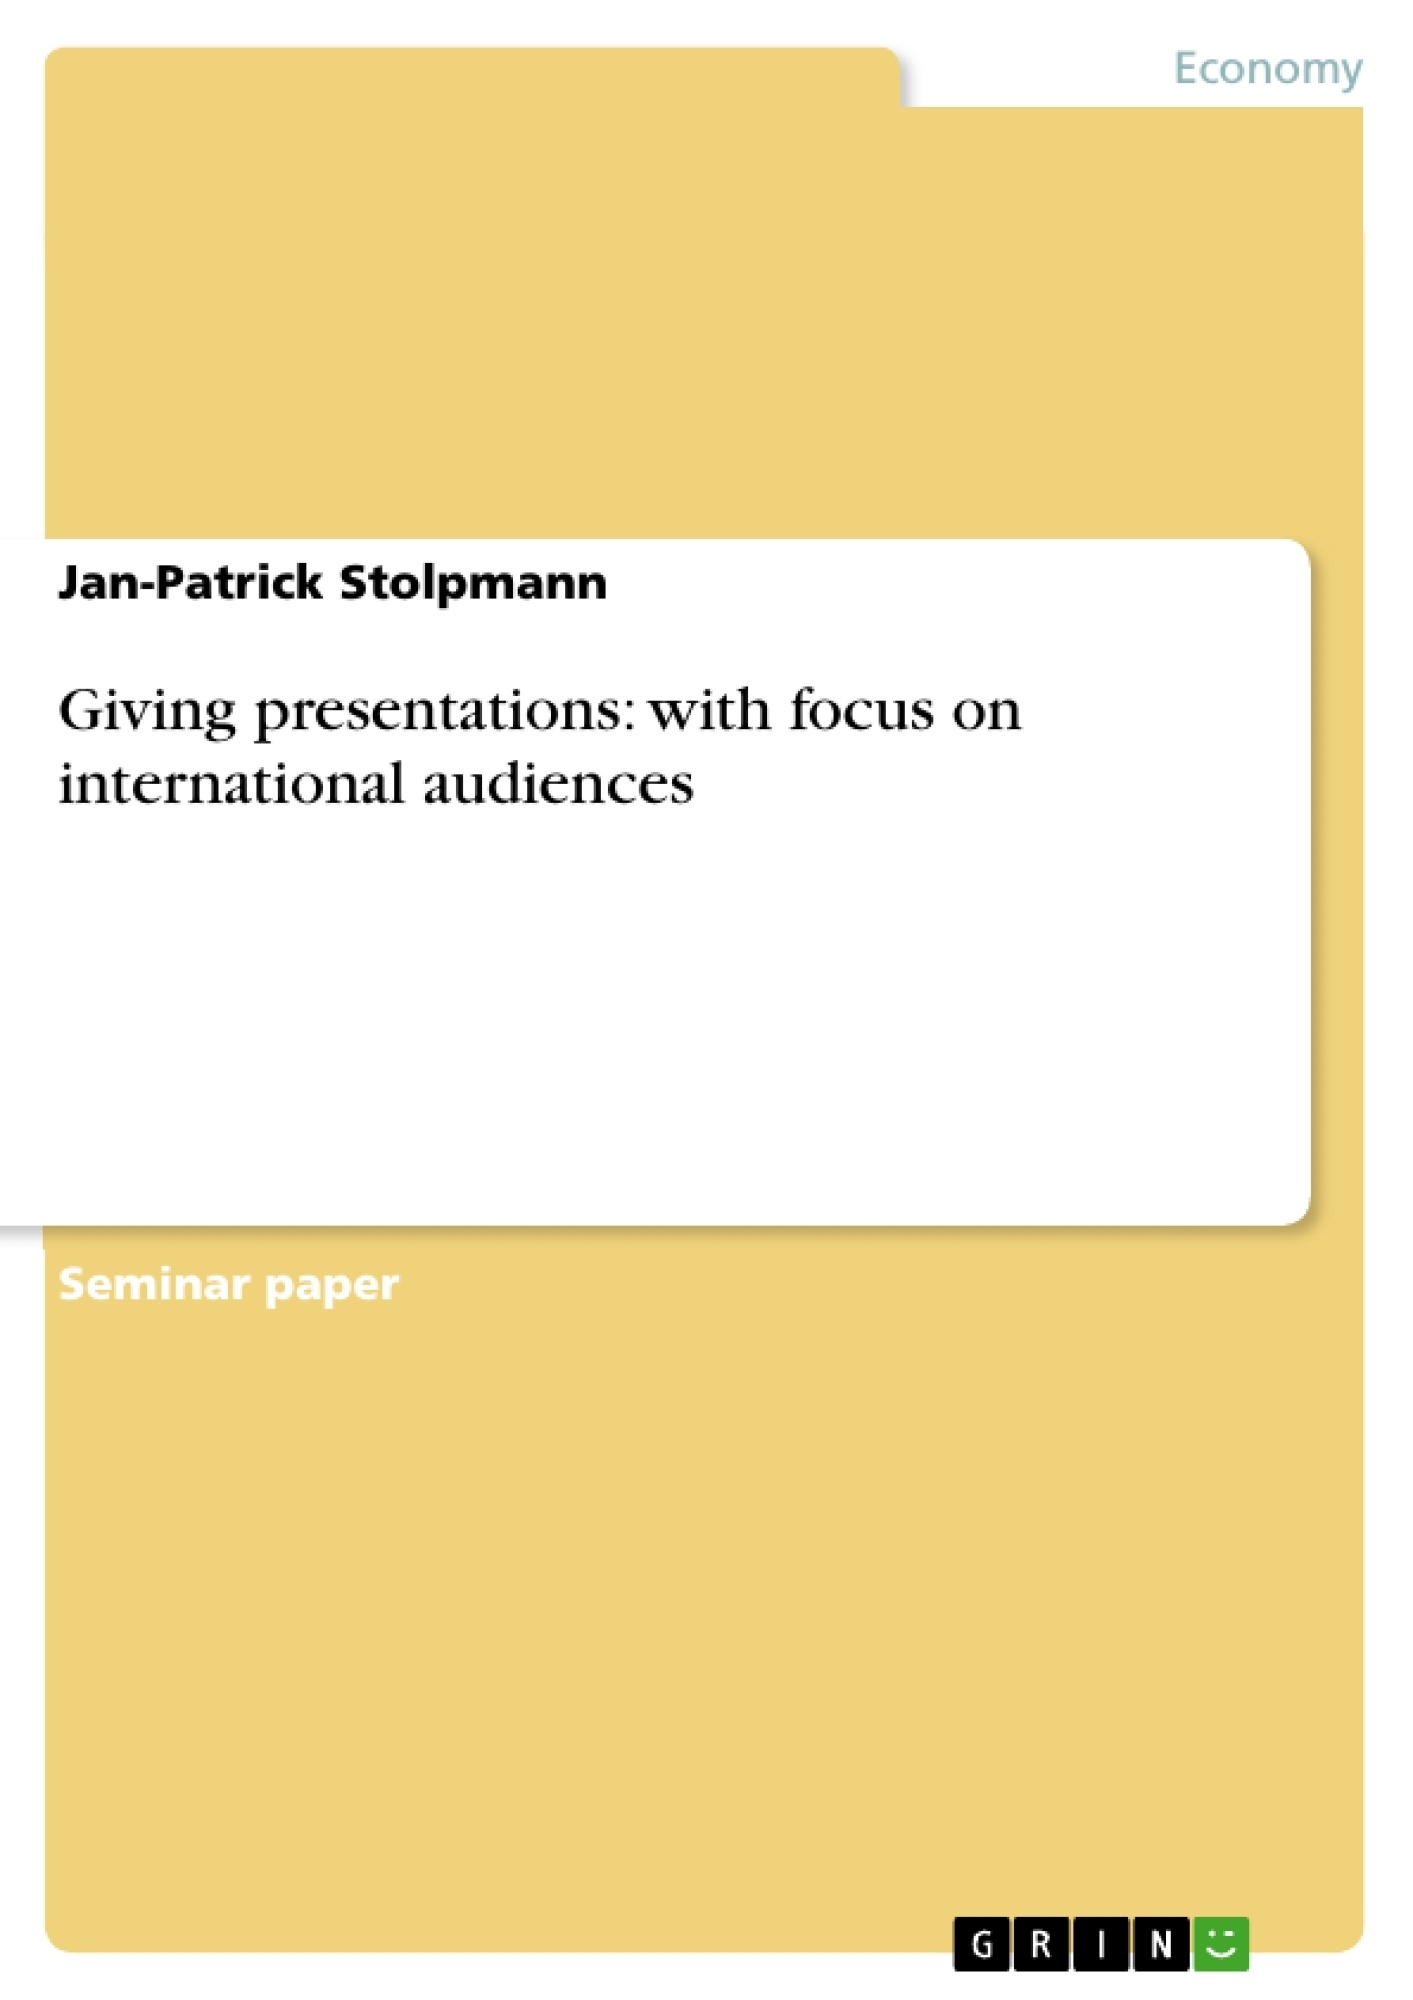 Title: Giving presentations: with focus on international audiences